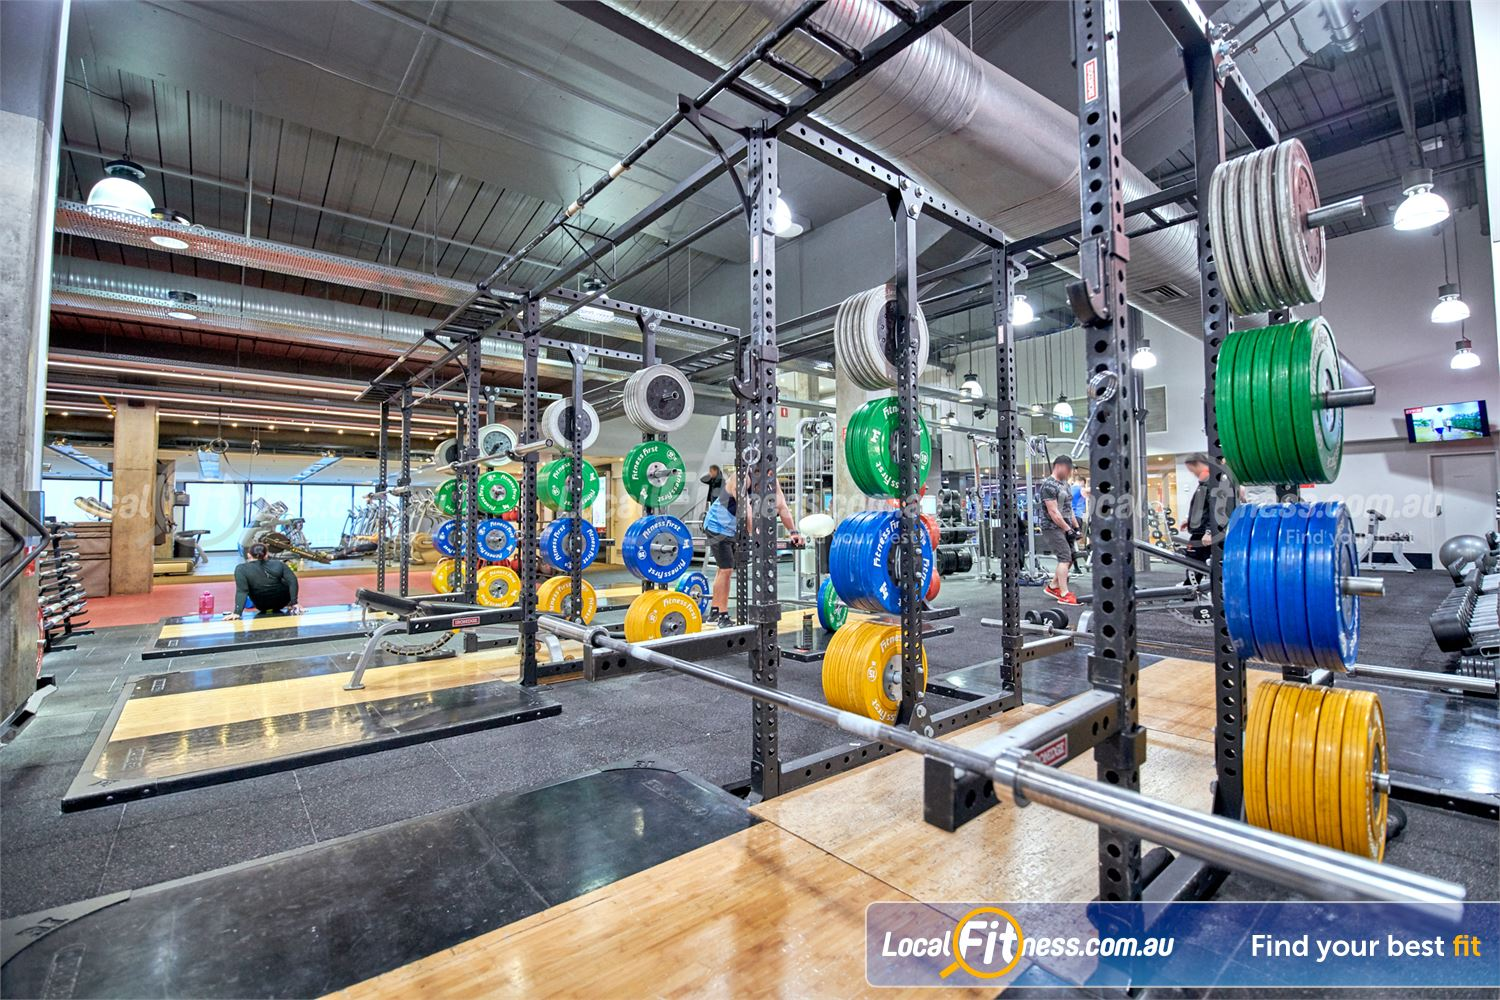 Fitness First Victoria Gardens Near South Yarra High-performance strength cages and Olympic lifting platforms in Richmond.